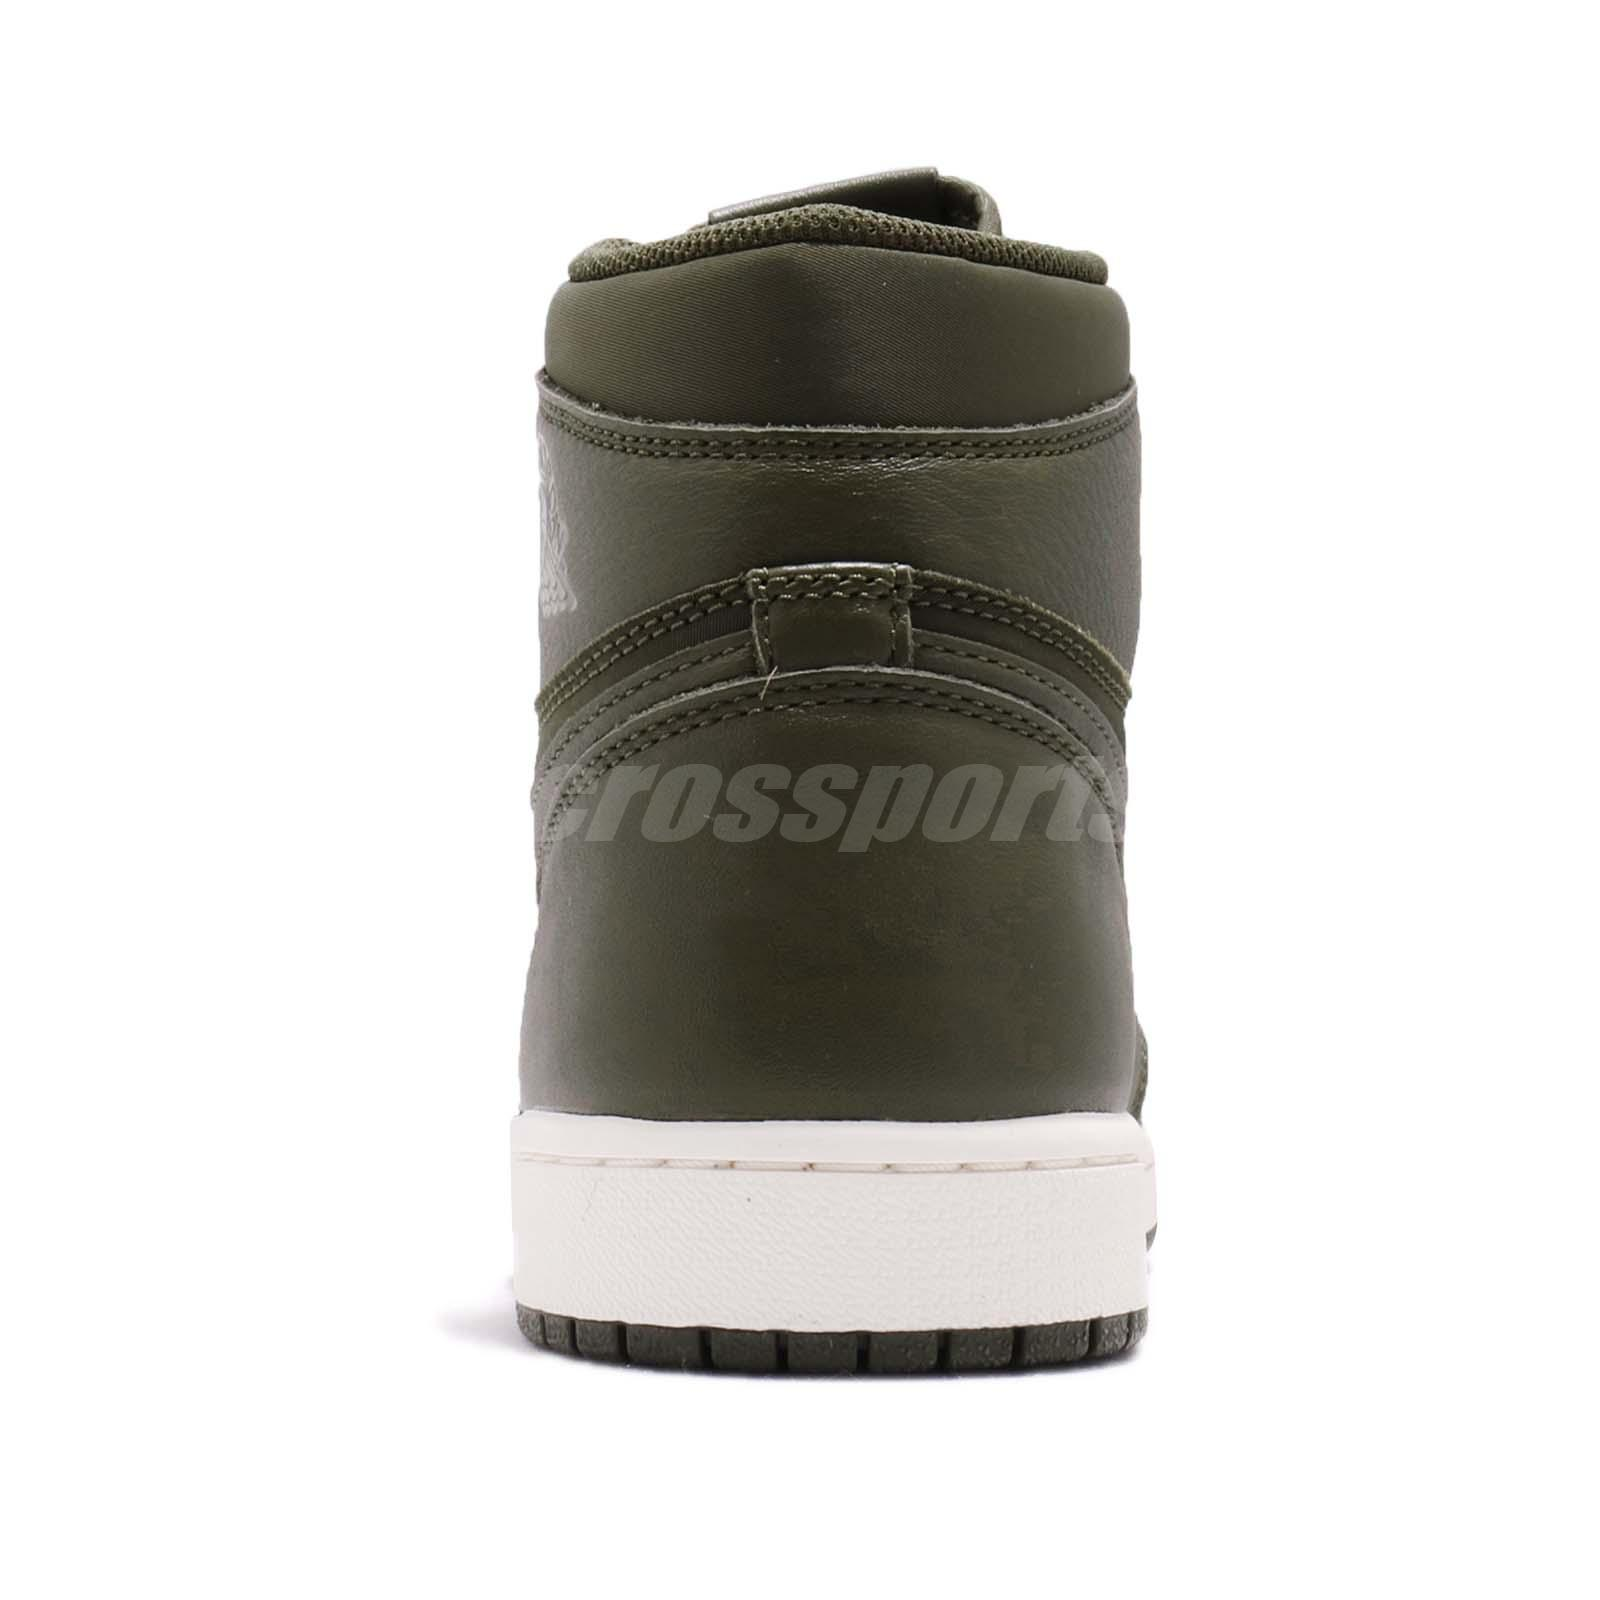 new concept 3480b 6438c Color  OLIVE CANVAS SAIL. Made In  China. Condition  Brand New With Box